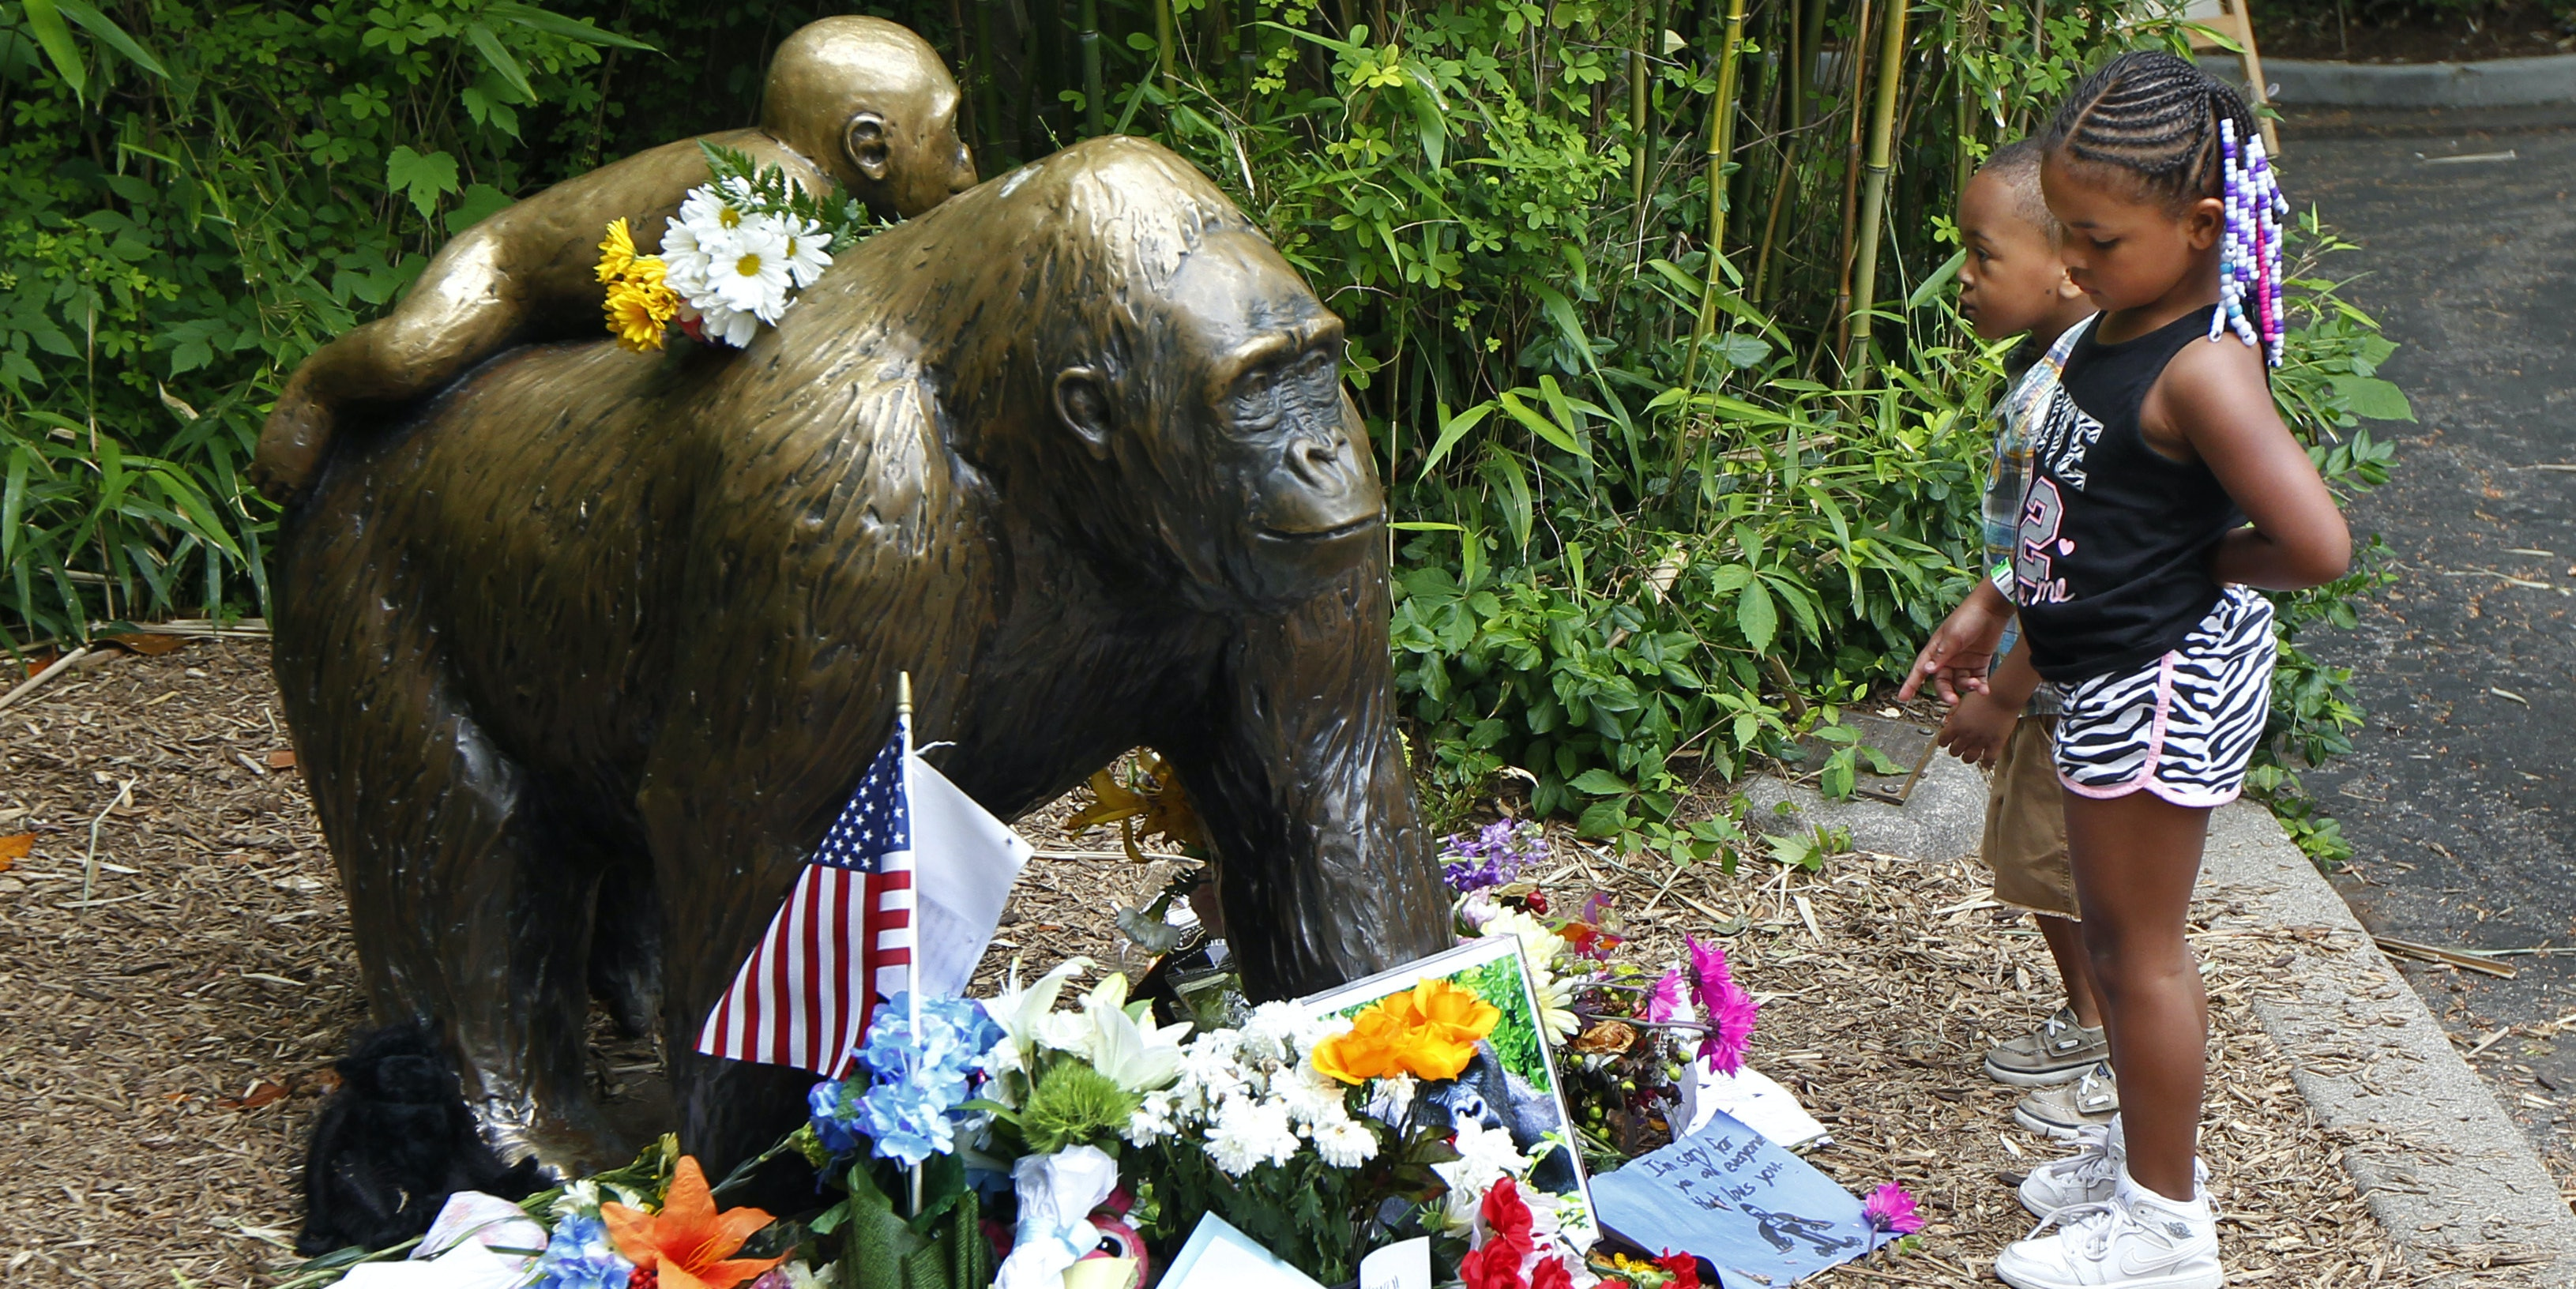 CINCINNATI, OH - JUNE 2:  Visitors view a bronze statue of a gorilla and her baby surrounded by flowers outside the Cincinnati Zoo 's Gorilla World exhibit days after a 3-year-old boy fell into the moat and officials were forced to kill Harambe, a 17-year-old Western lowland silverback gorilla June 2, 2016 in Cincinnati, Ohio. The exhibit is still closed as zoo officials work to upgrade safety features of the exhibit.  (Photo by John Sommers II/Getty Images)